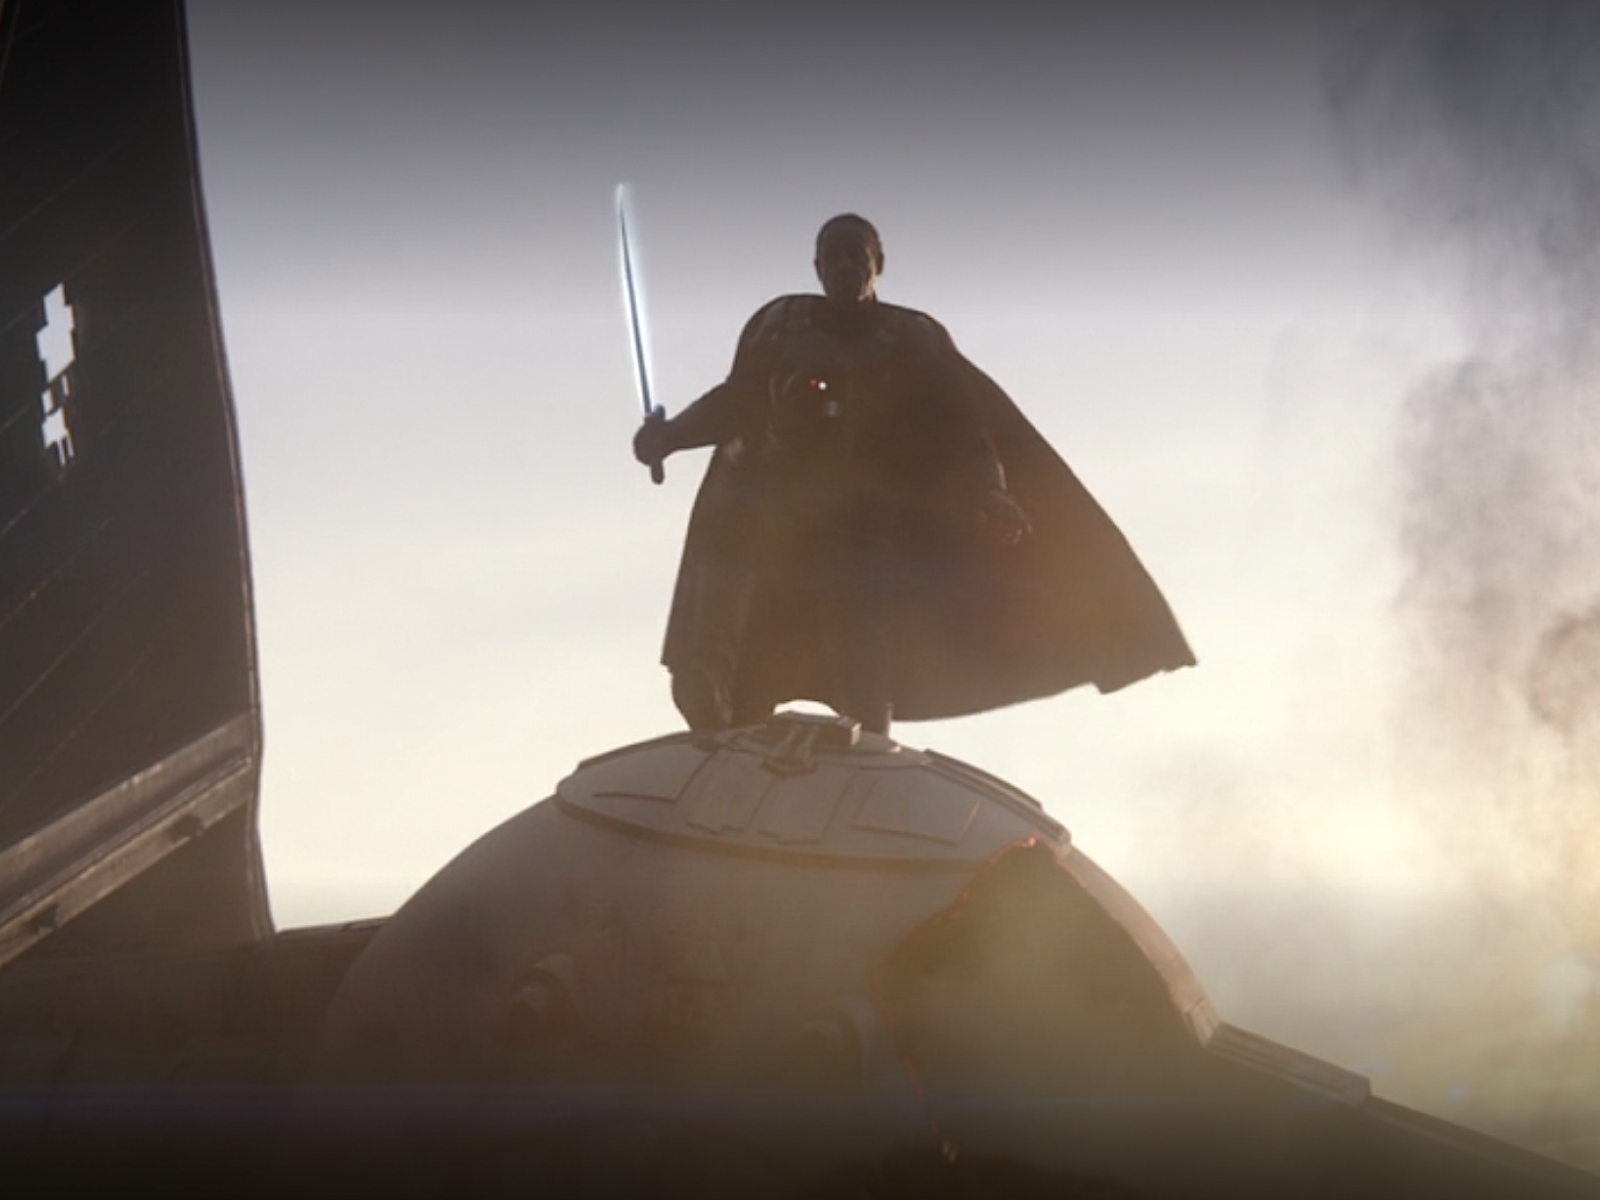 The Mandalorian Season 2 Features Darksaber Battle And Baby Yoda Is Intrigued